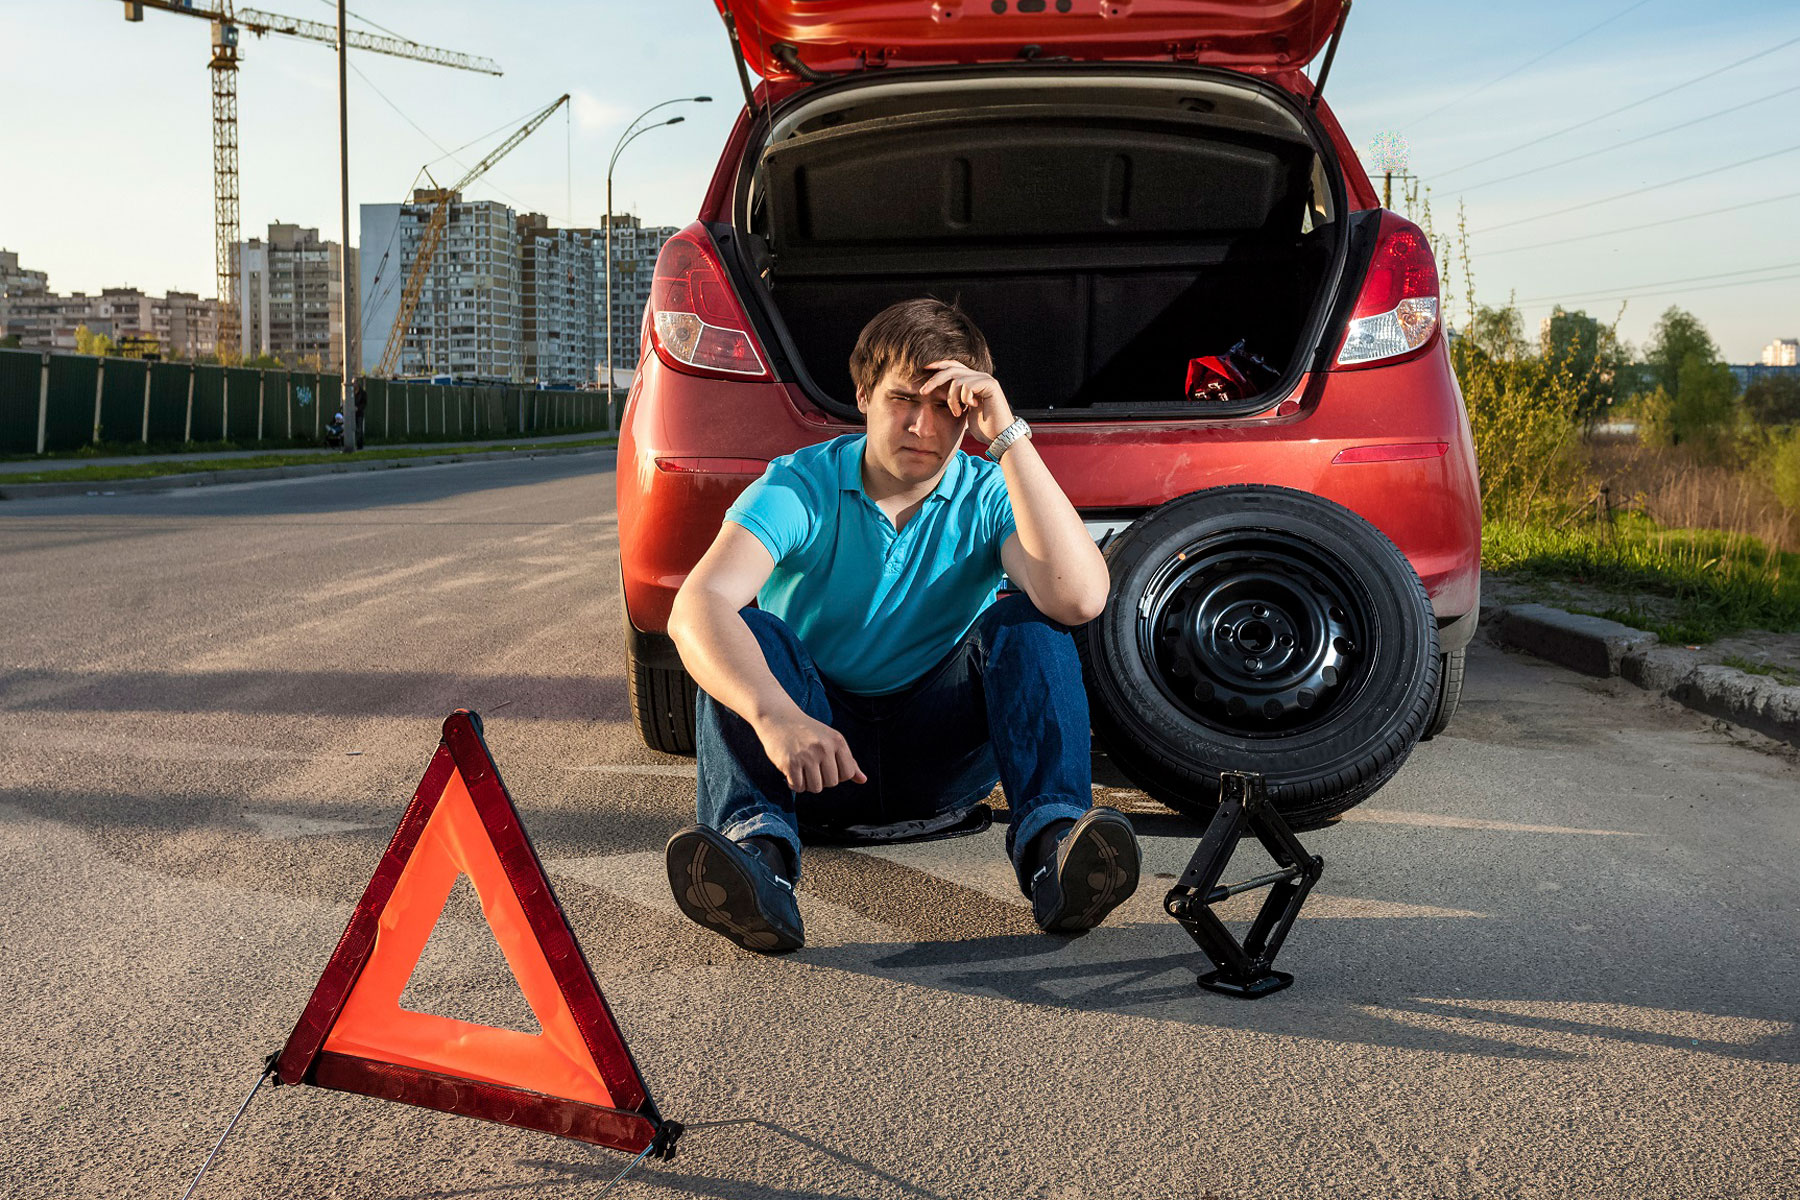 Look after your tyres